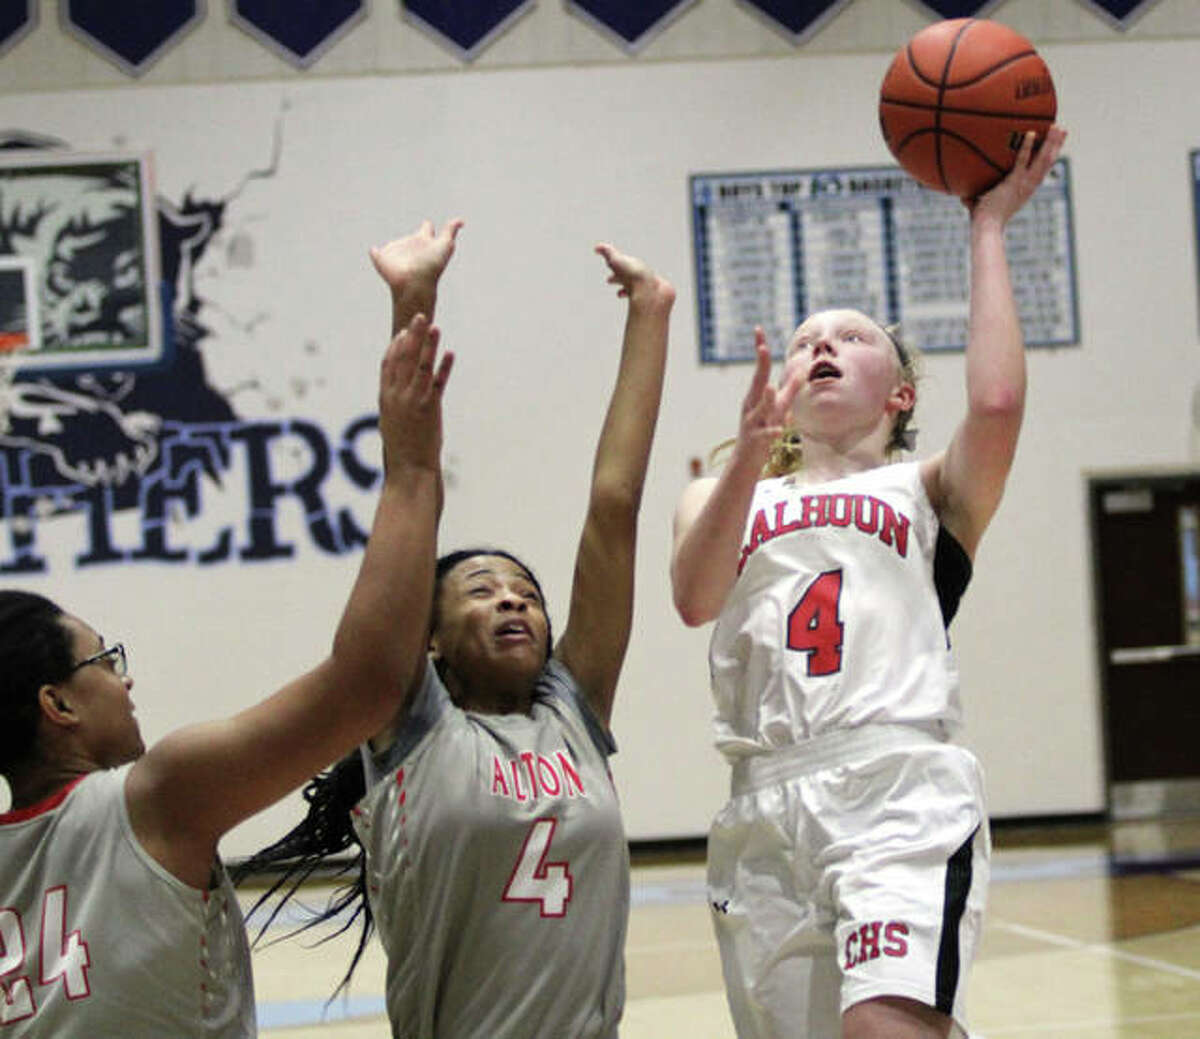 Calhoun's Colleen Schumann (right) shoots over Alton's Germayia Wallace (4) and Deja Carter during a tournament game Dec. 29 in Jerseyville. Calhoun and Alton both sustained losses in conference play Thursday night.